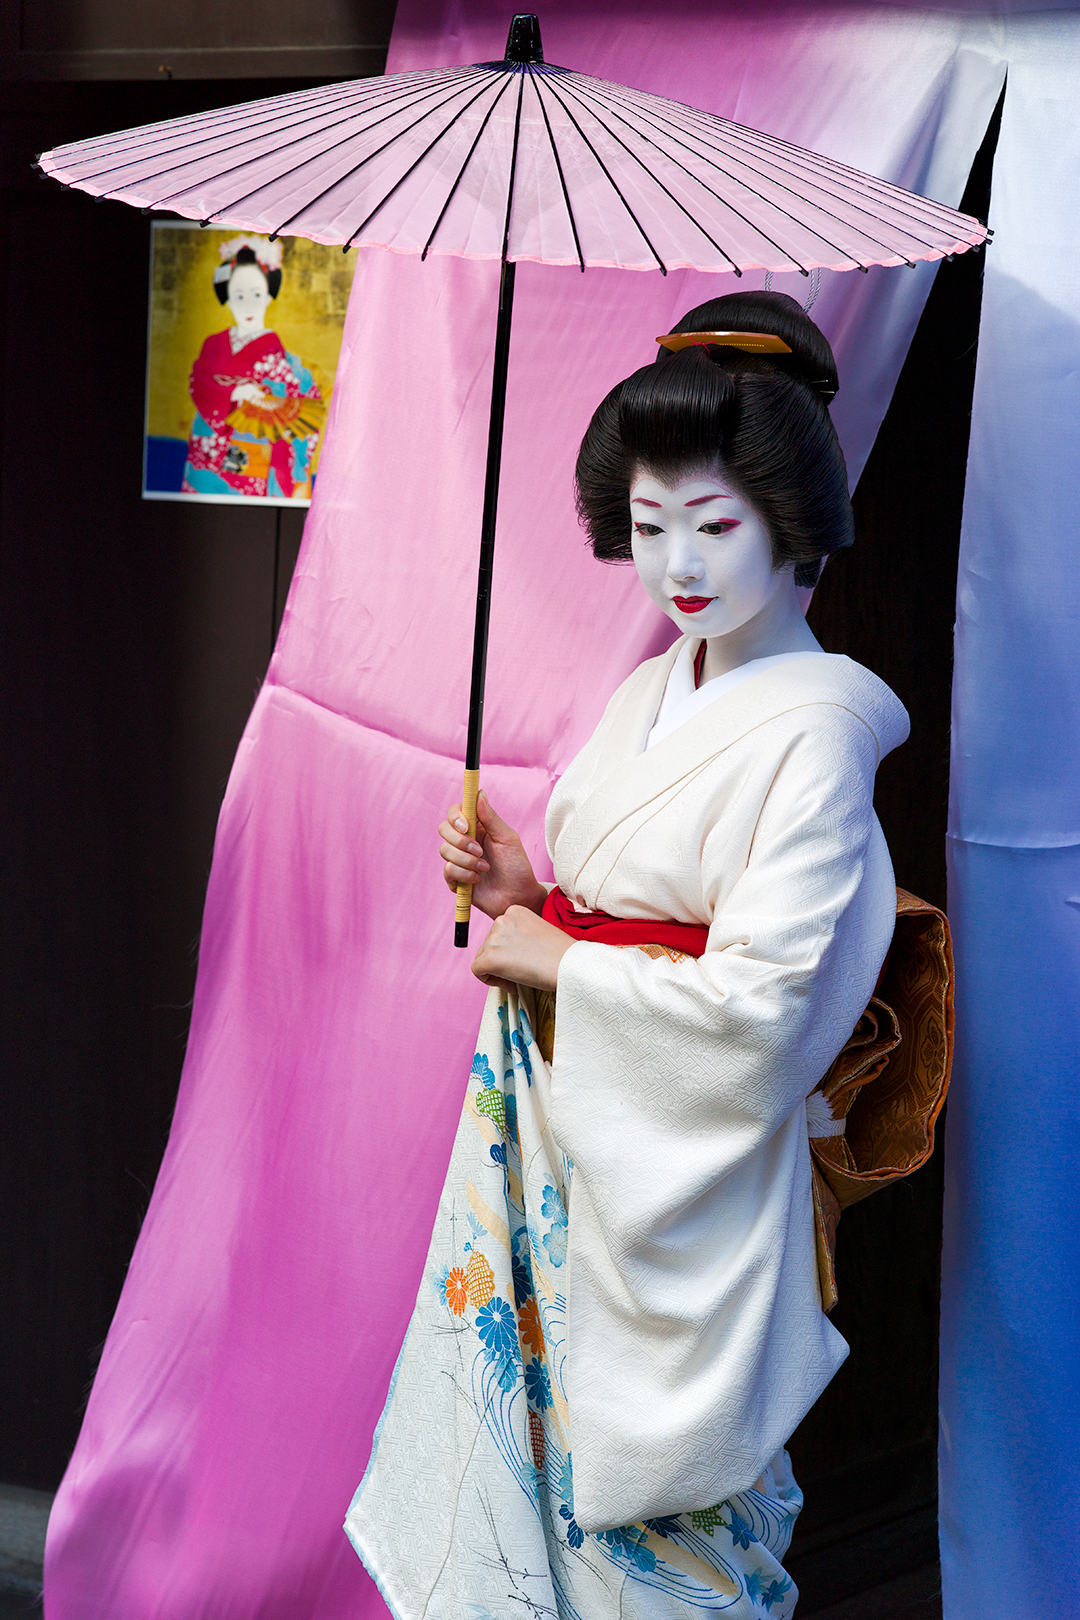 the geishas role in japanese social life